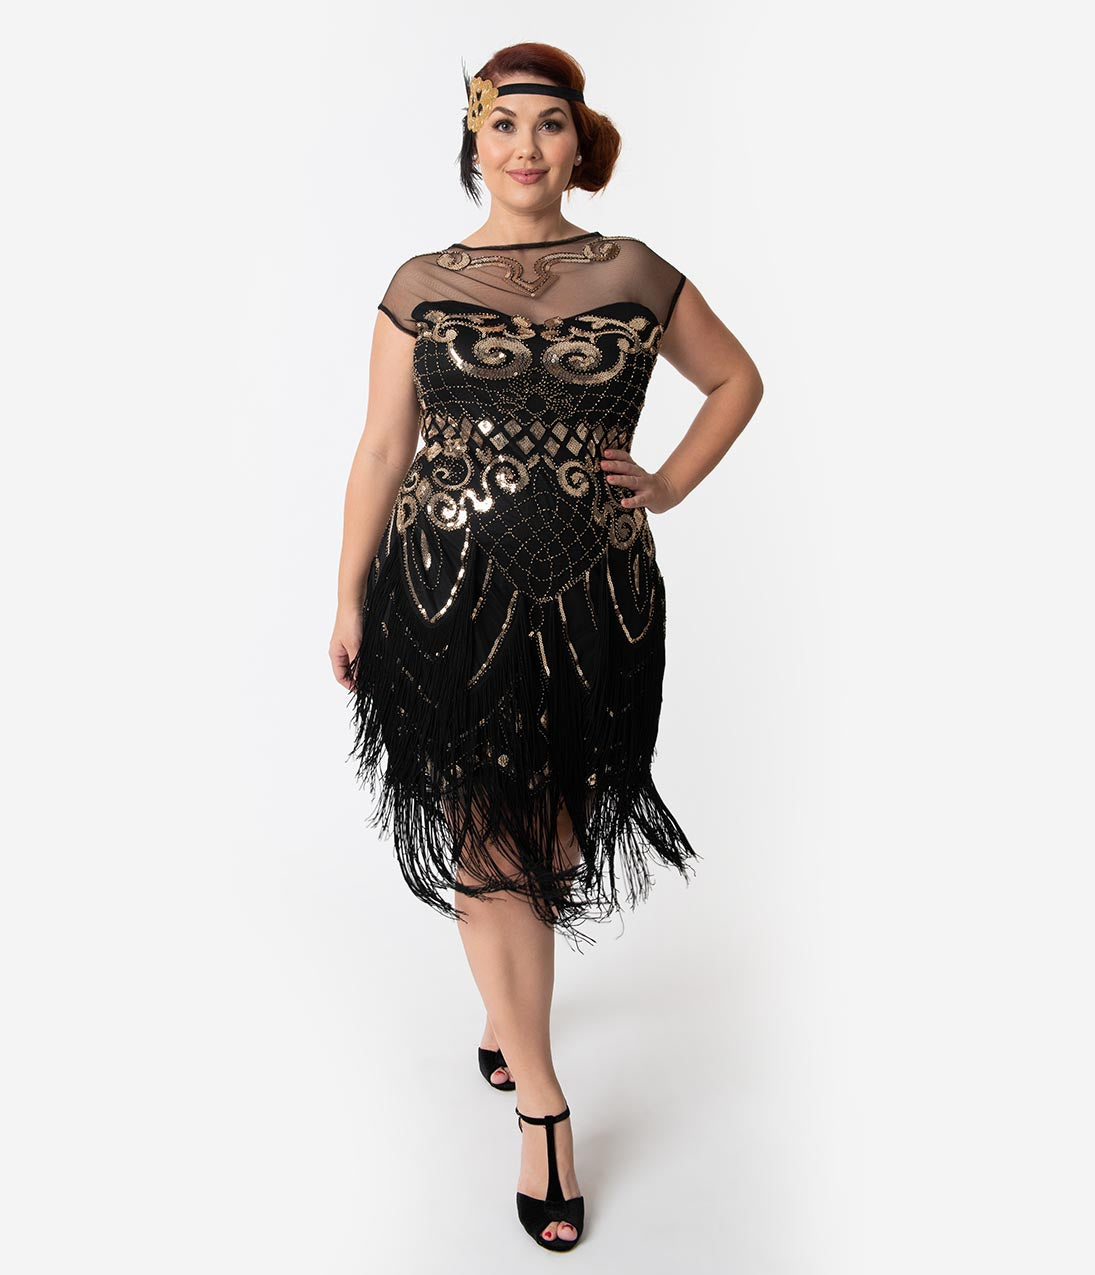 57f90e0dd7ed Unique Vintage Plus Size 1920s Black & Gold Sequin Fringe Zulla Flapper  Dress